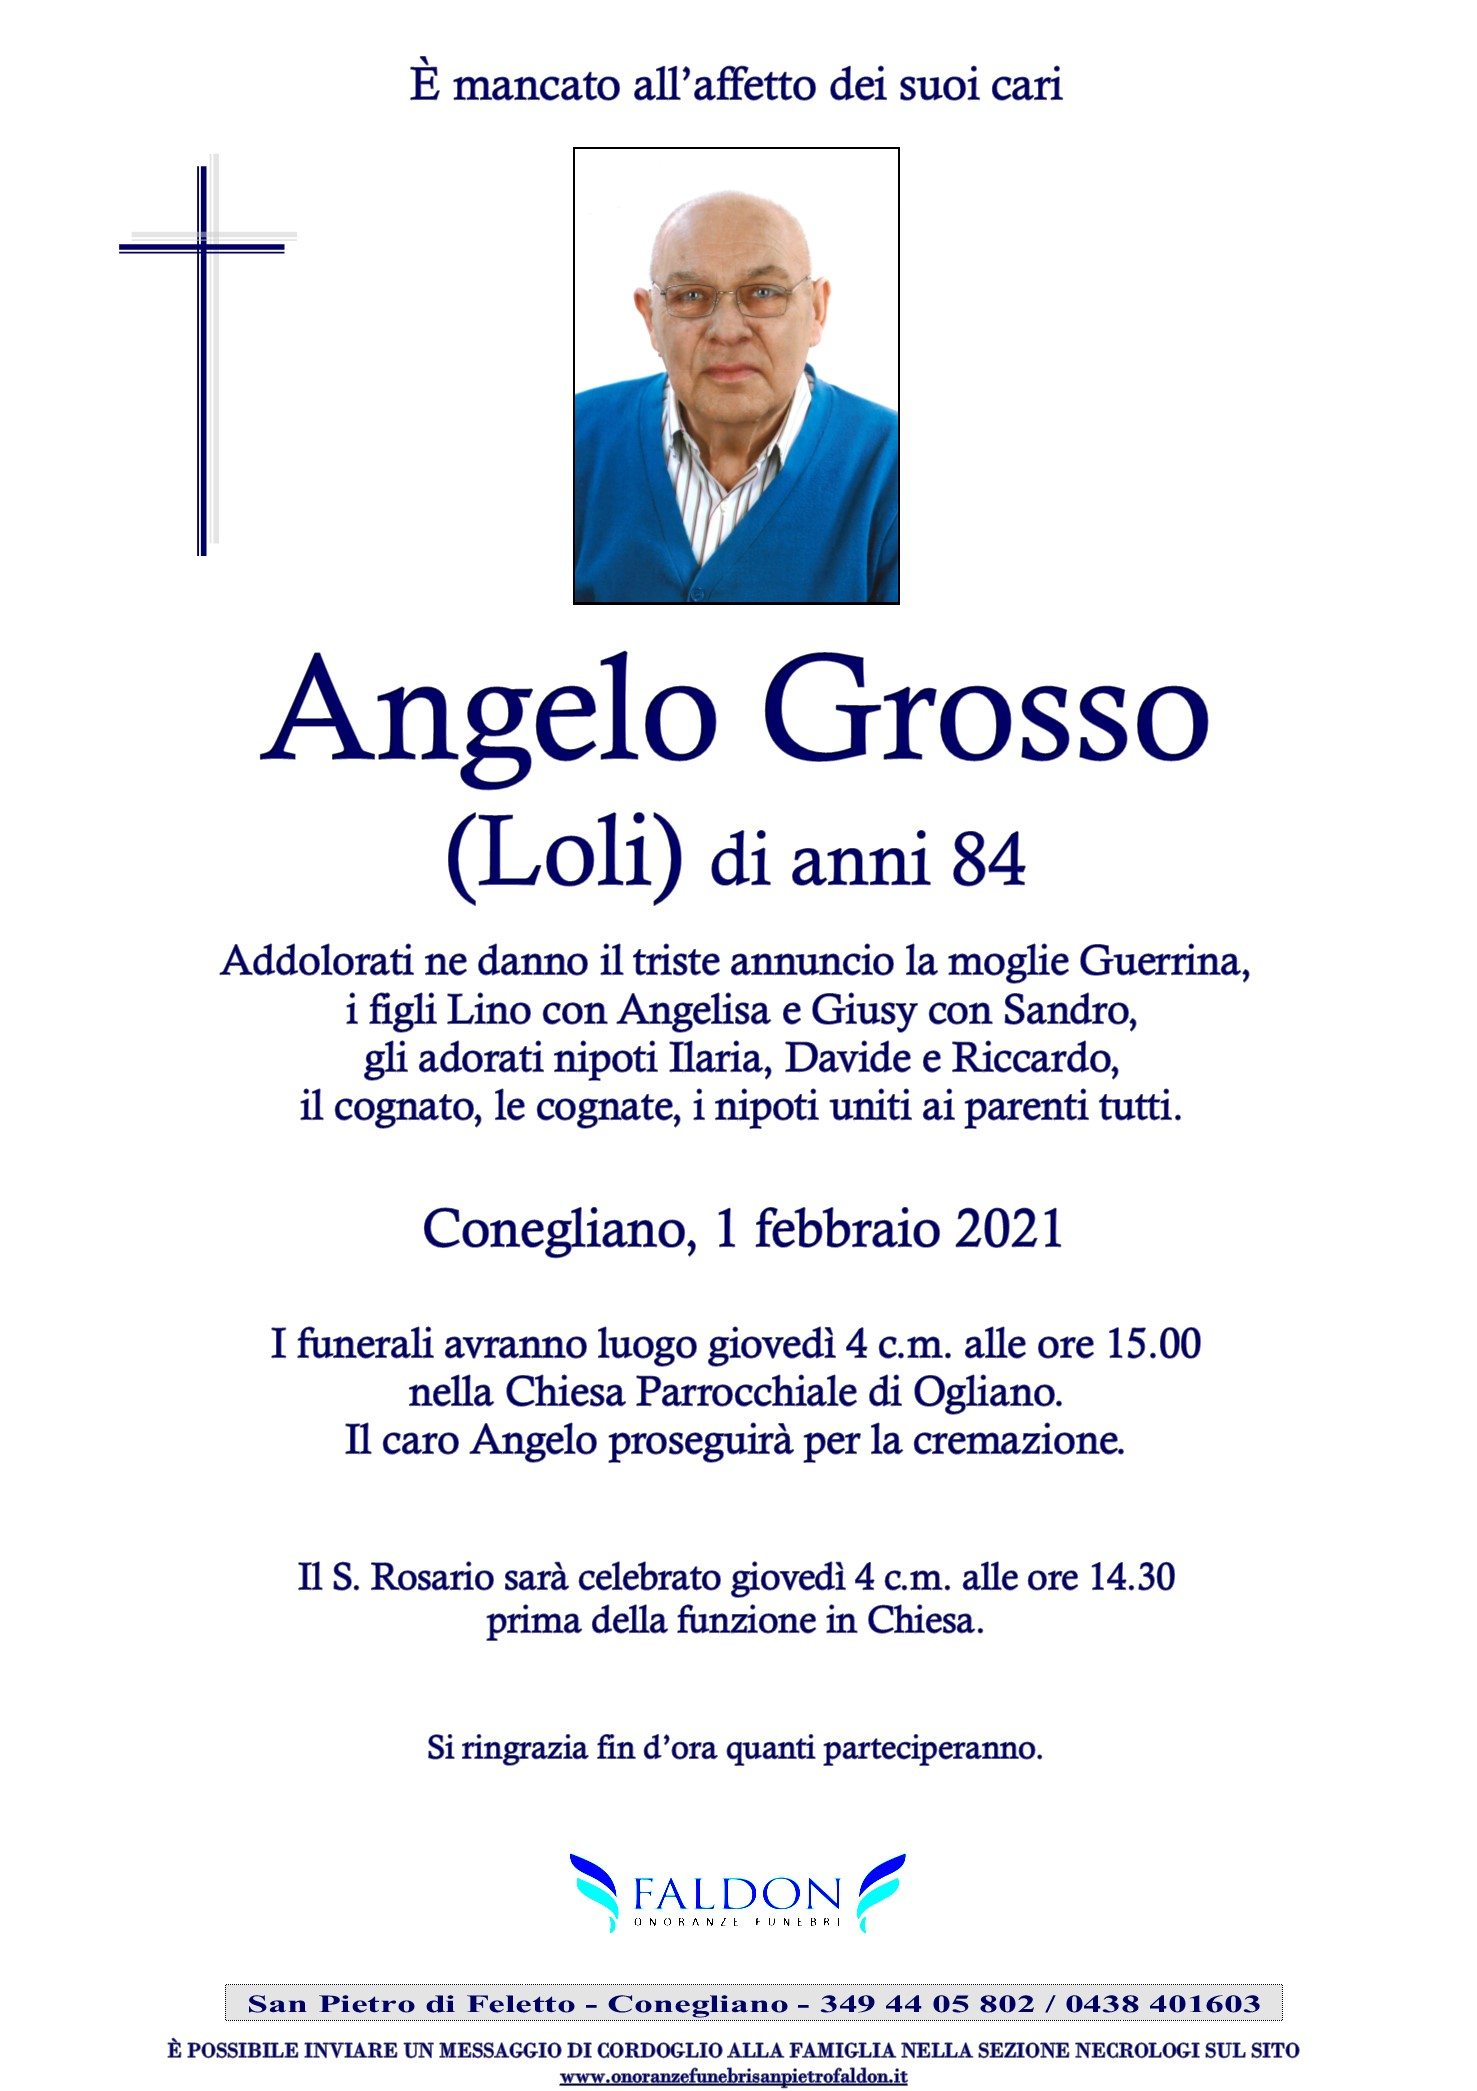 Angelo Grosso